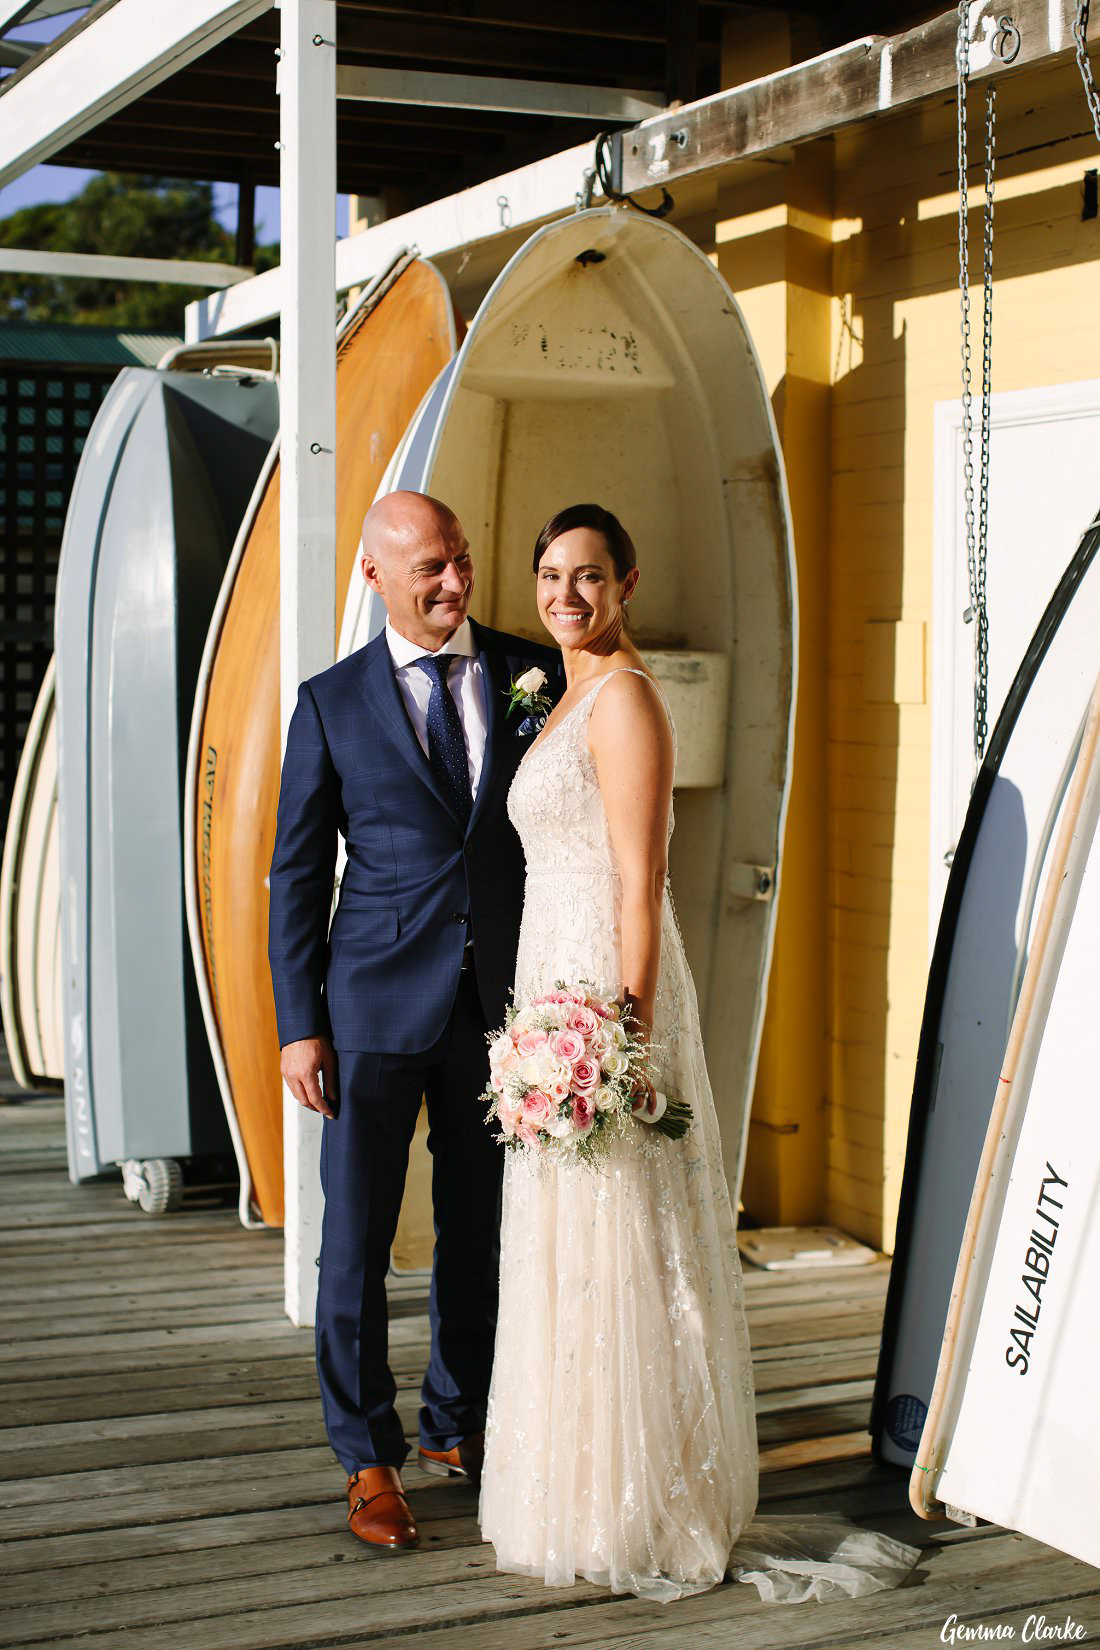 Naomi and Mark were grinning from ear to ear after their nuptials and enjoyed the sunshine on the wharf at their Manly Yacht Club Wedding